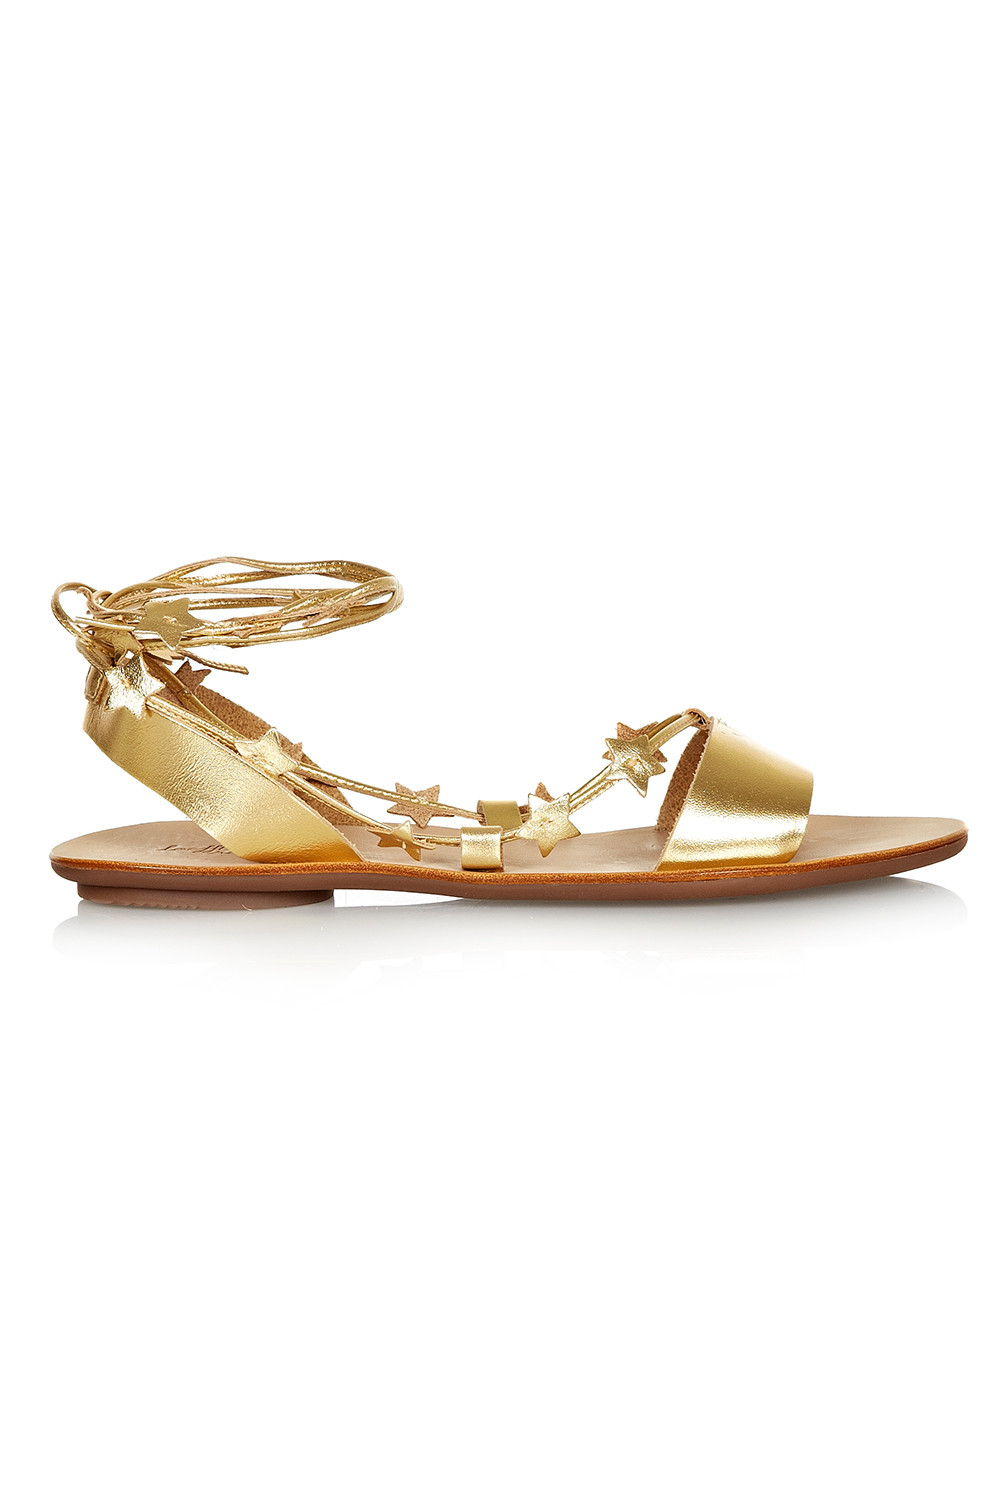 Loeffler Randall Starla Gold Leather Ankle Wrap Flat